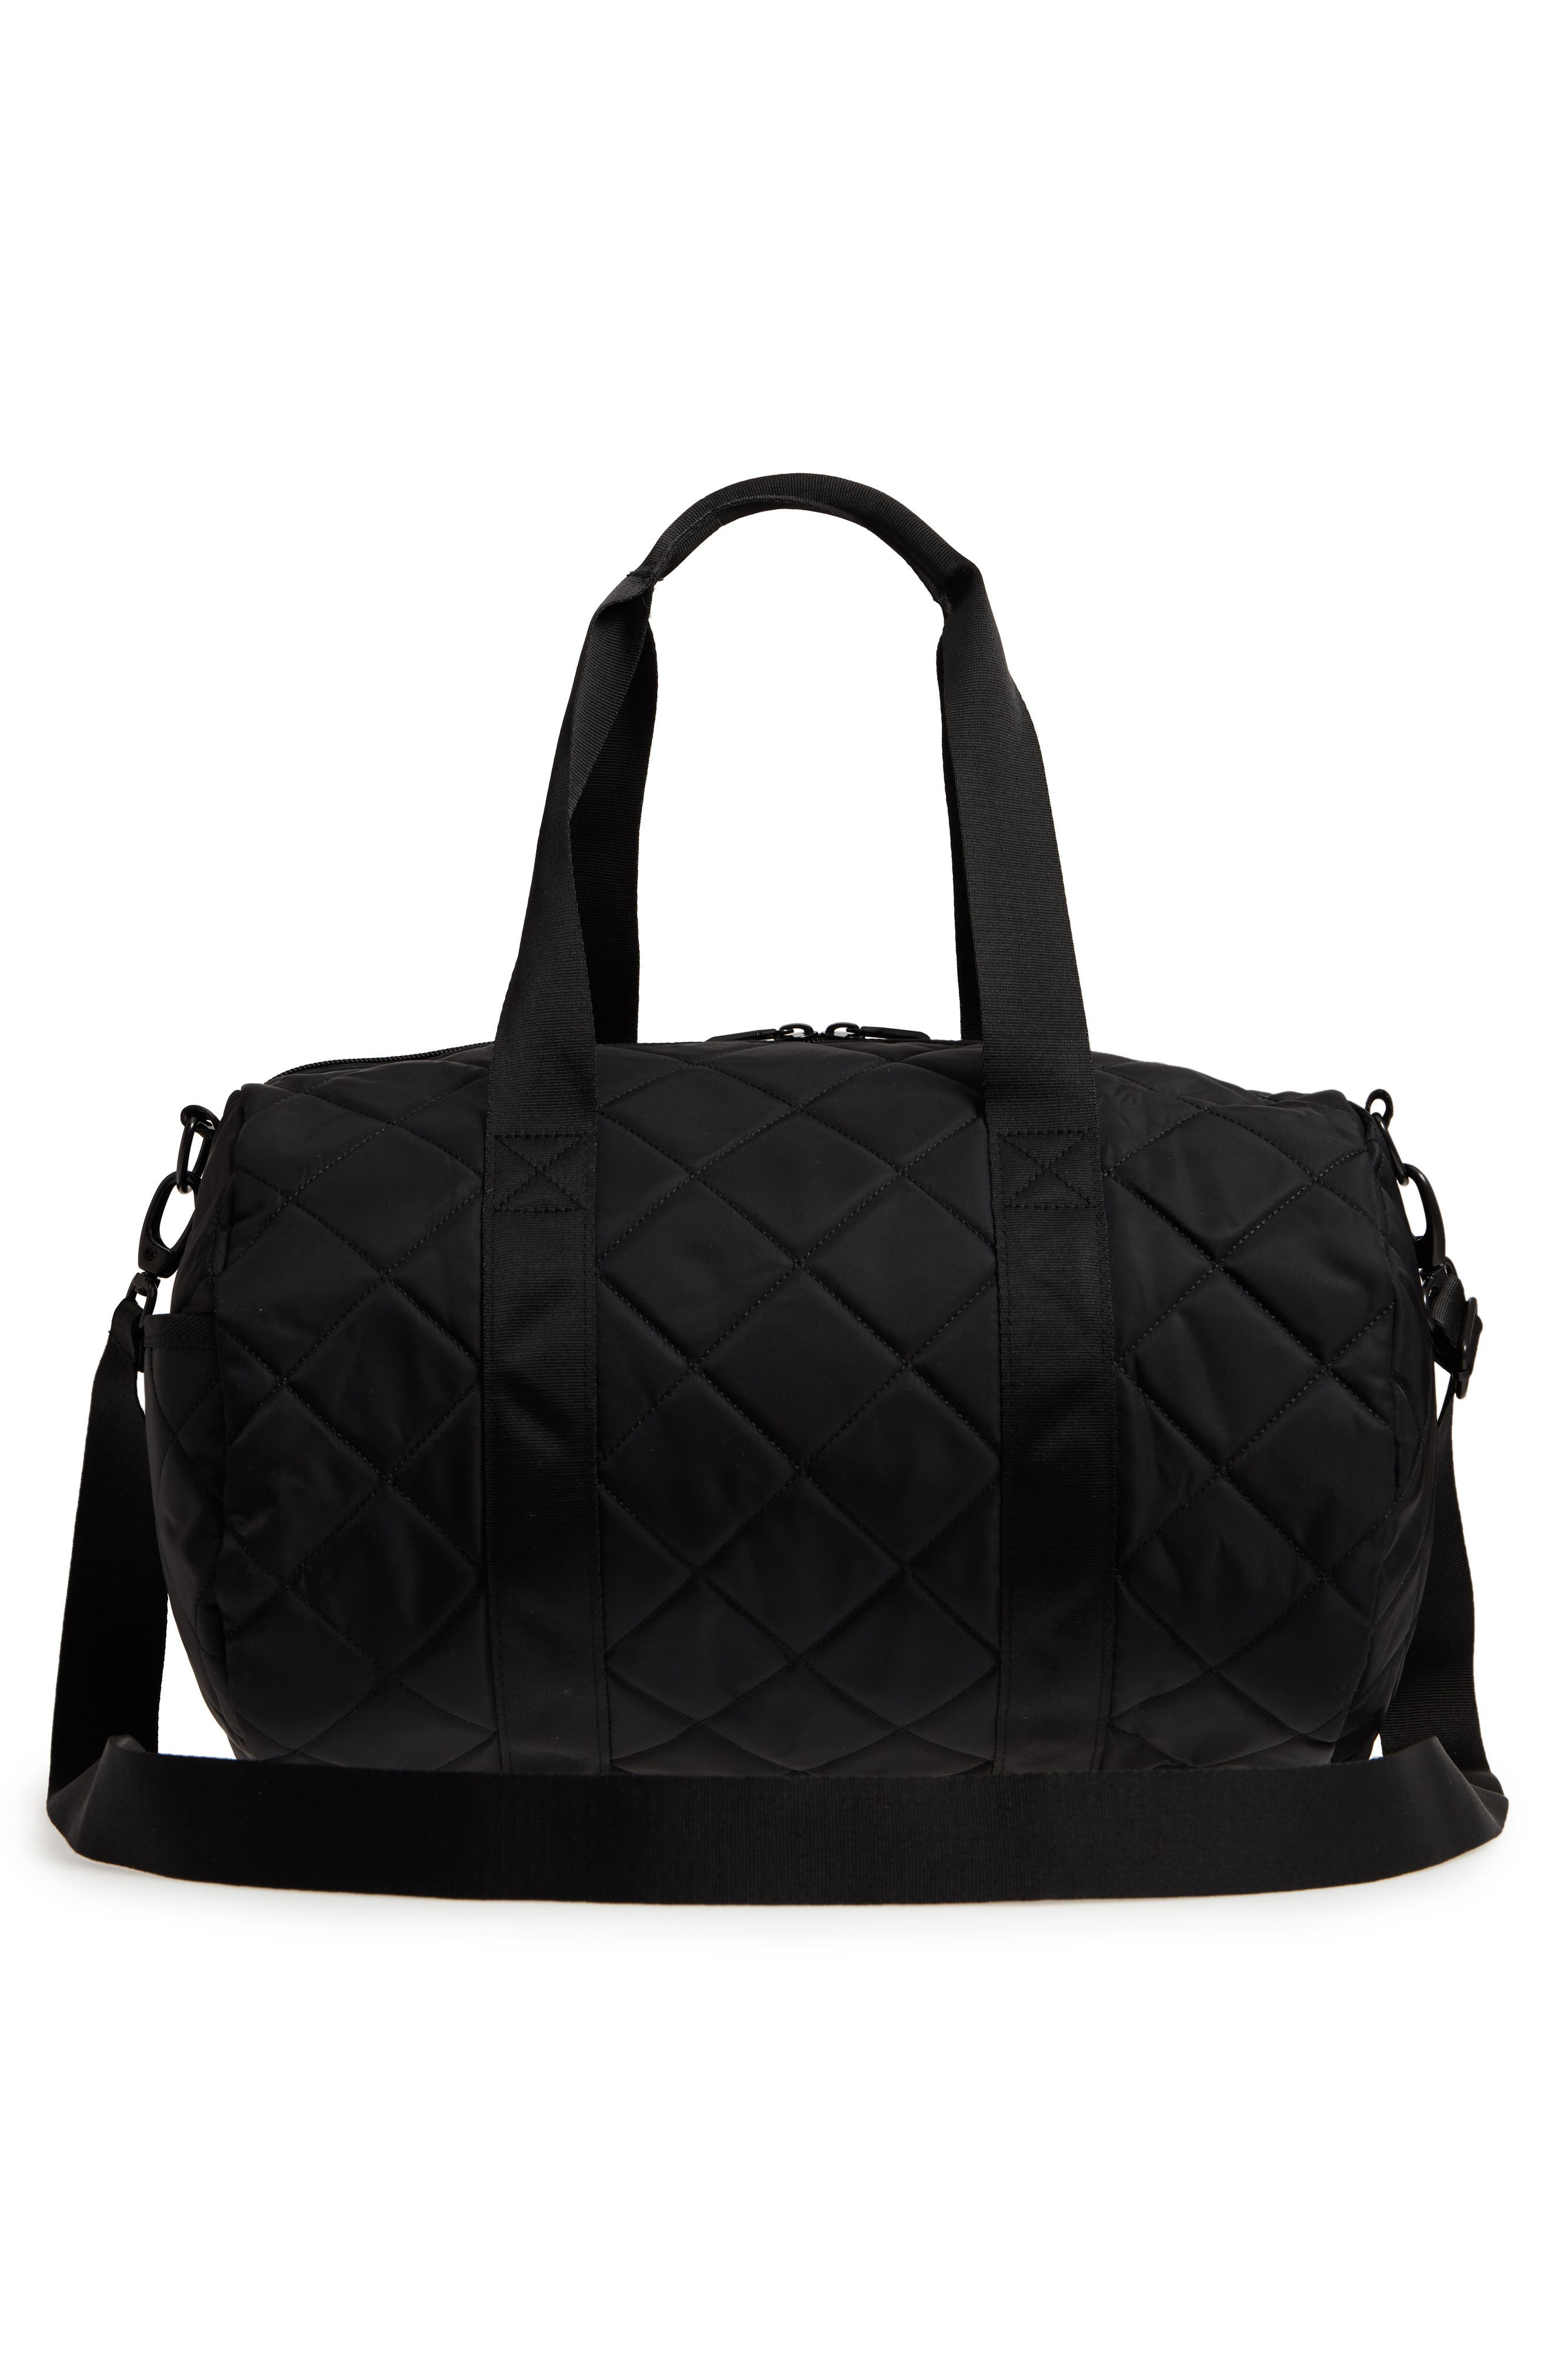 Roadie Small Duffel Bag,                             Alternate thumbnail 3, color,                             Quilted Black Nylon